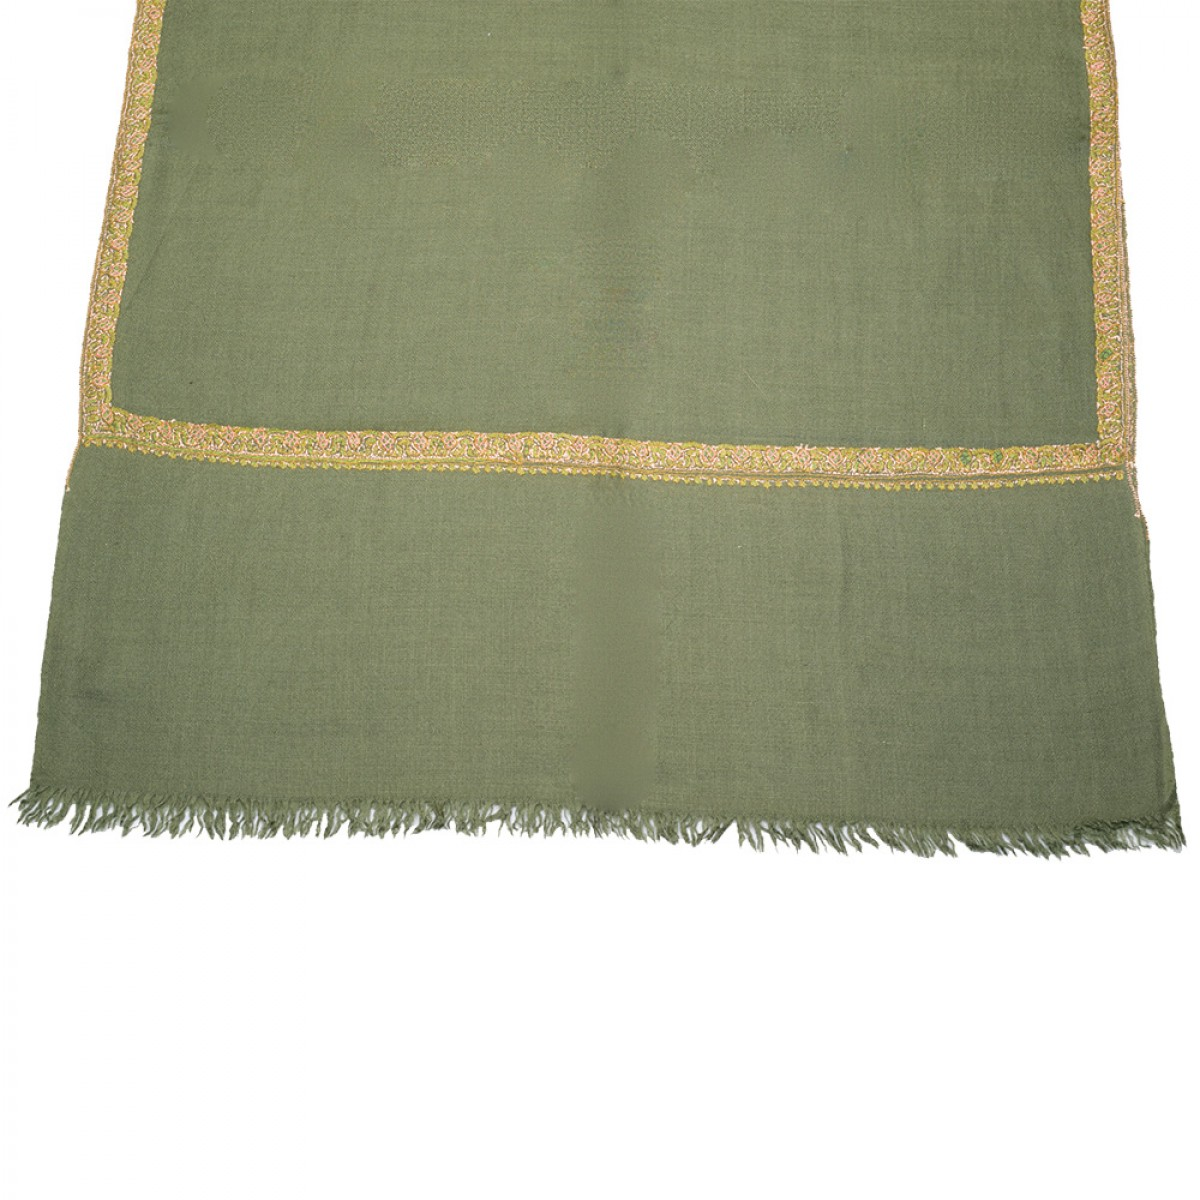 Embroidered Pashmina stole - Moss Green